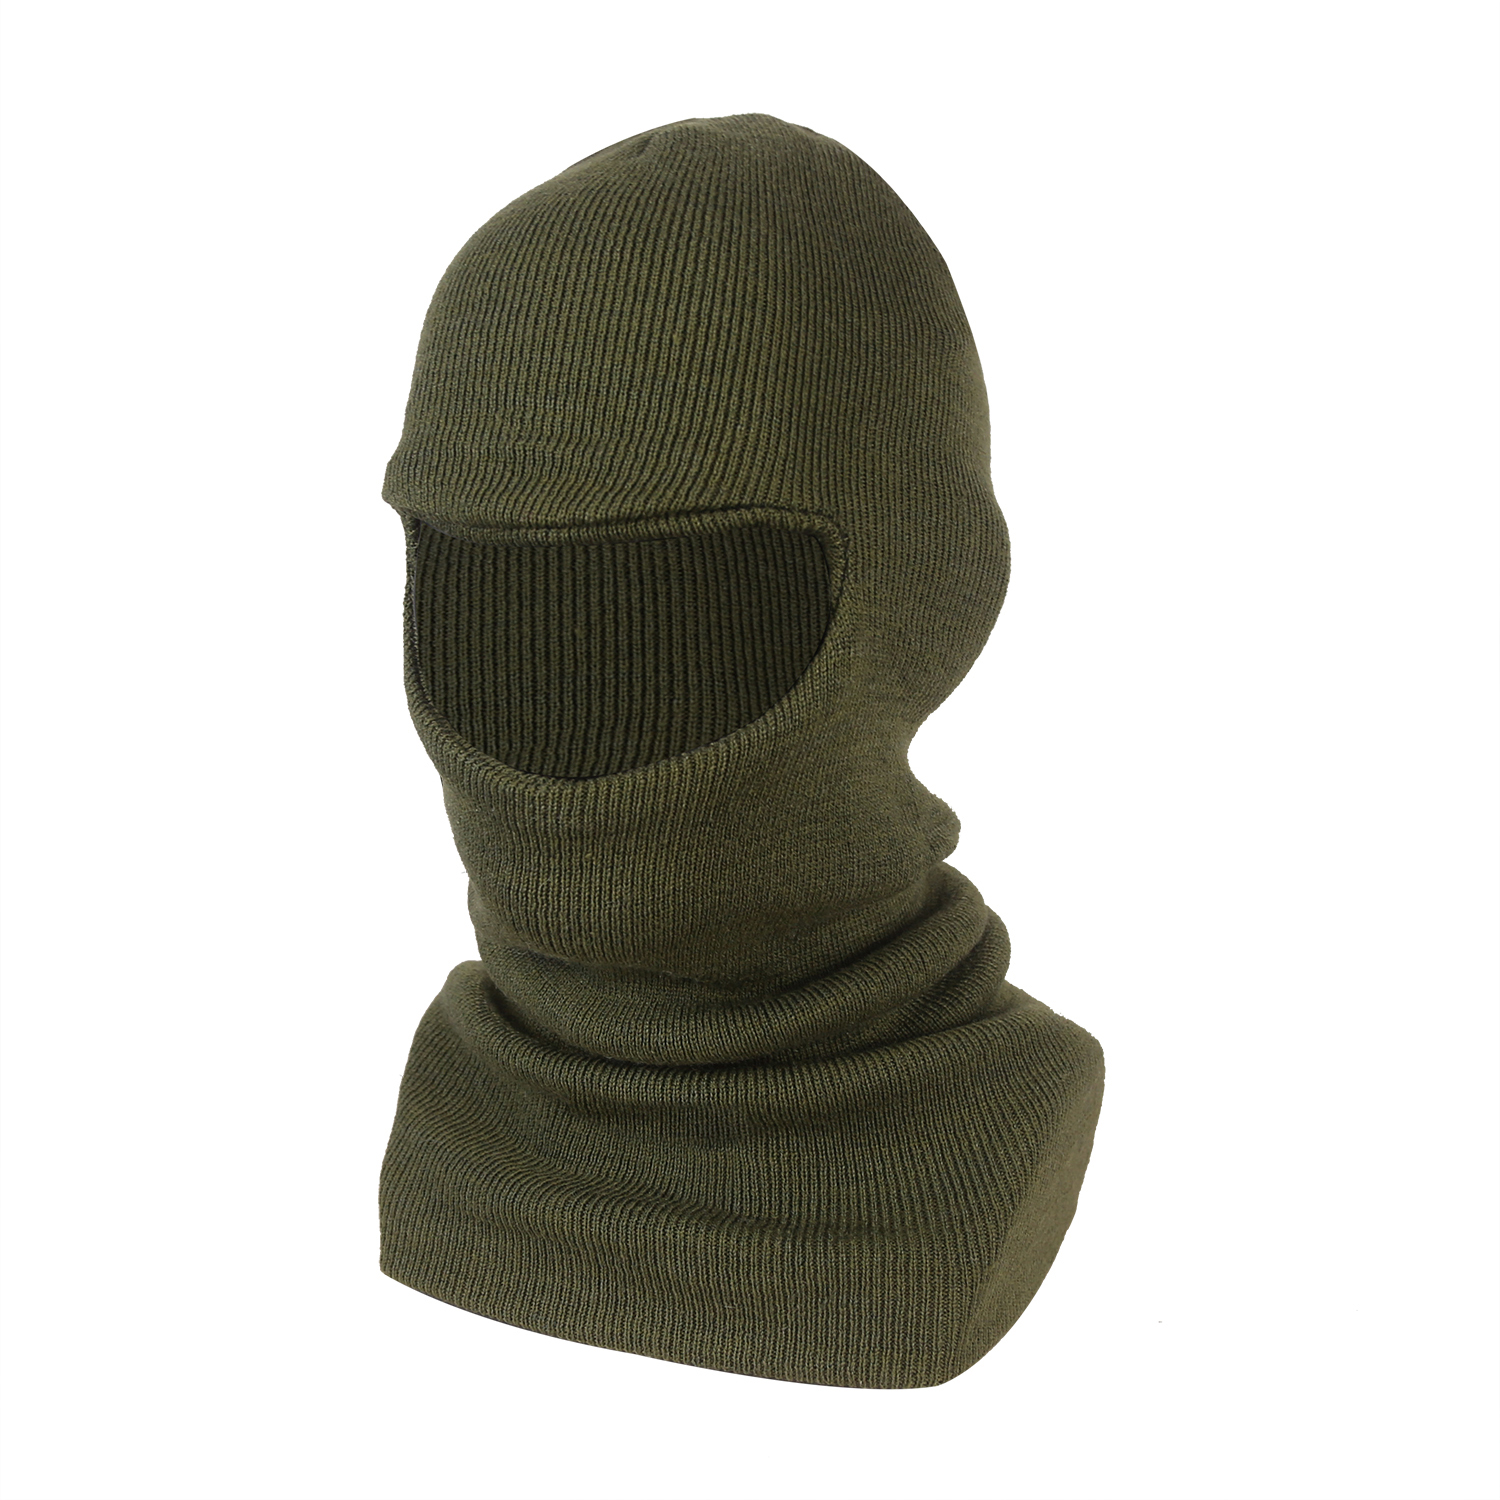 Single Layer Wool/Acrylic Balaclava/WKH-014-O